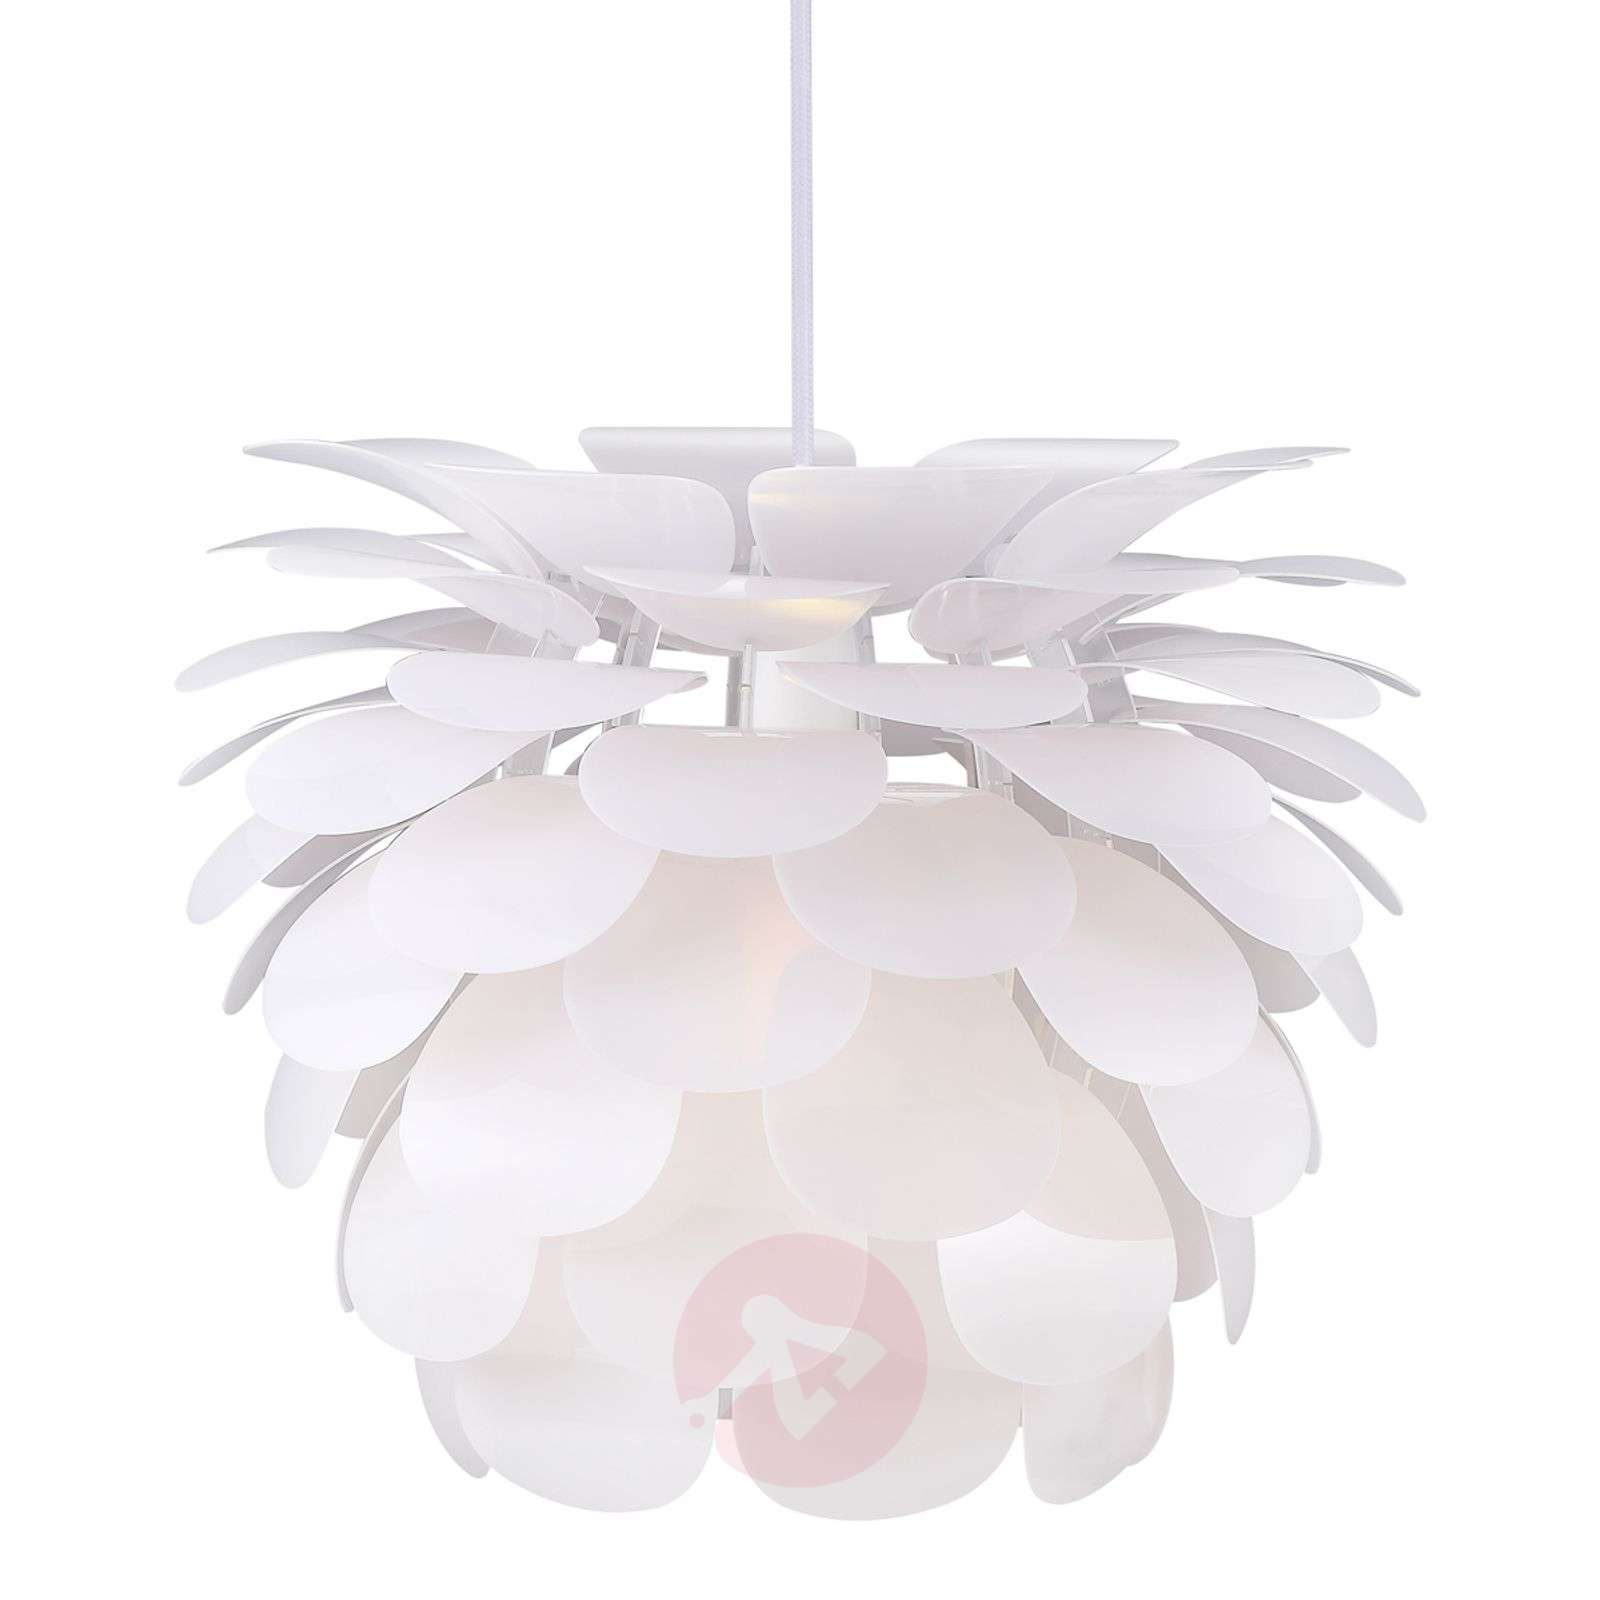 Pendant lamp Motion in special look, 50 cm-7005912-01